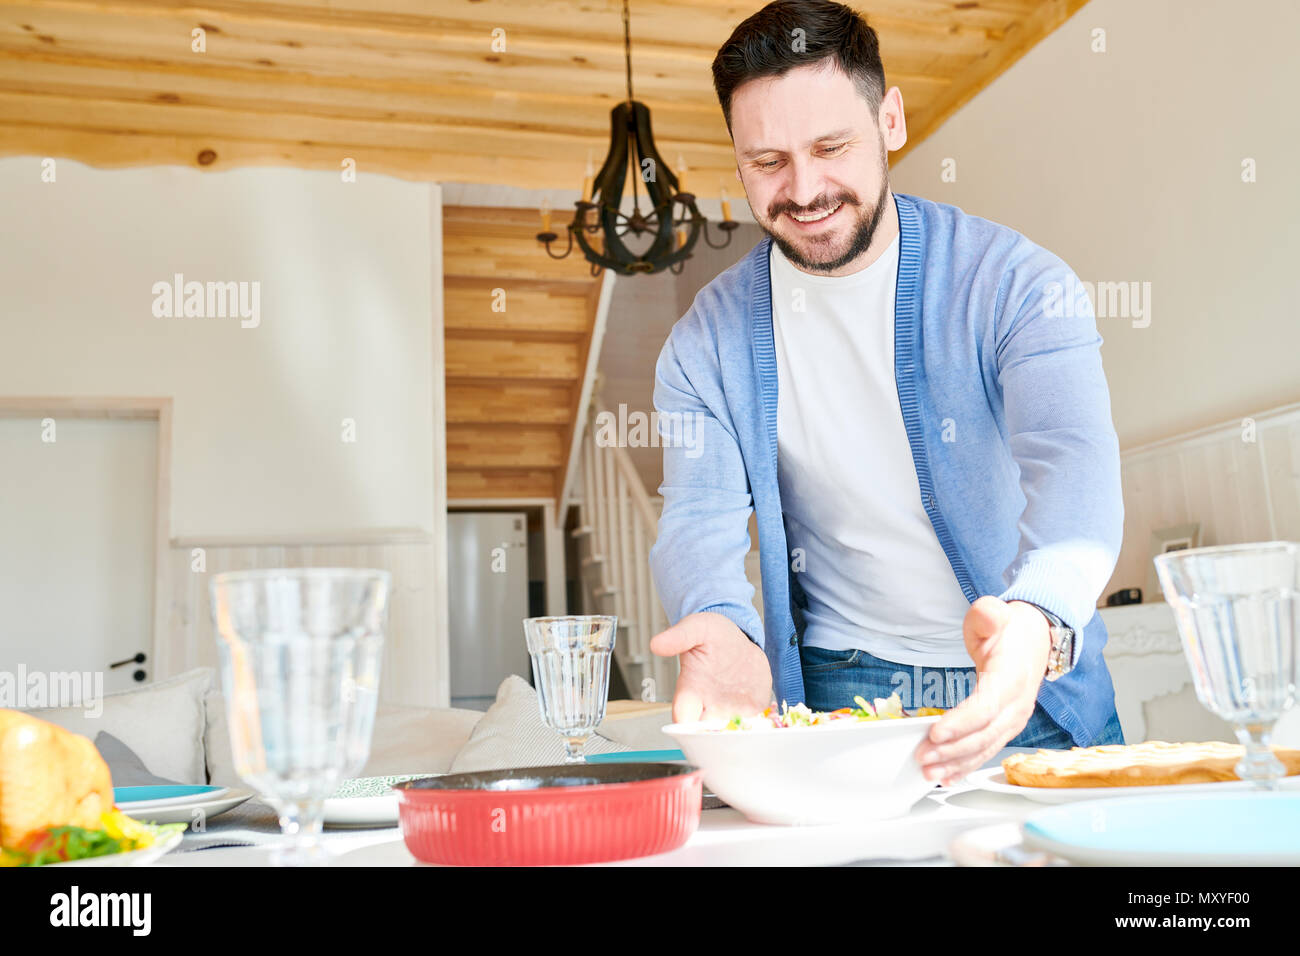 Portrait of mature bearded man setting table and smiling happily while waiting for guests at dinner in sunlit dining room at home, copy space - Stock Image